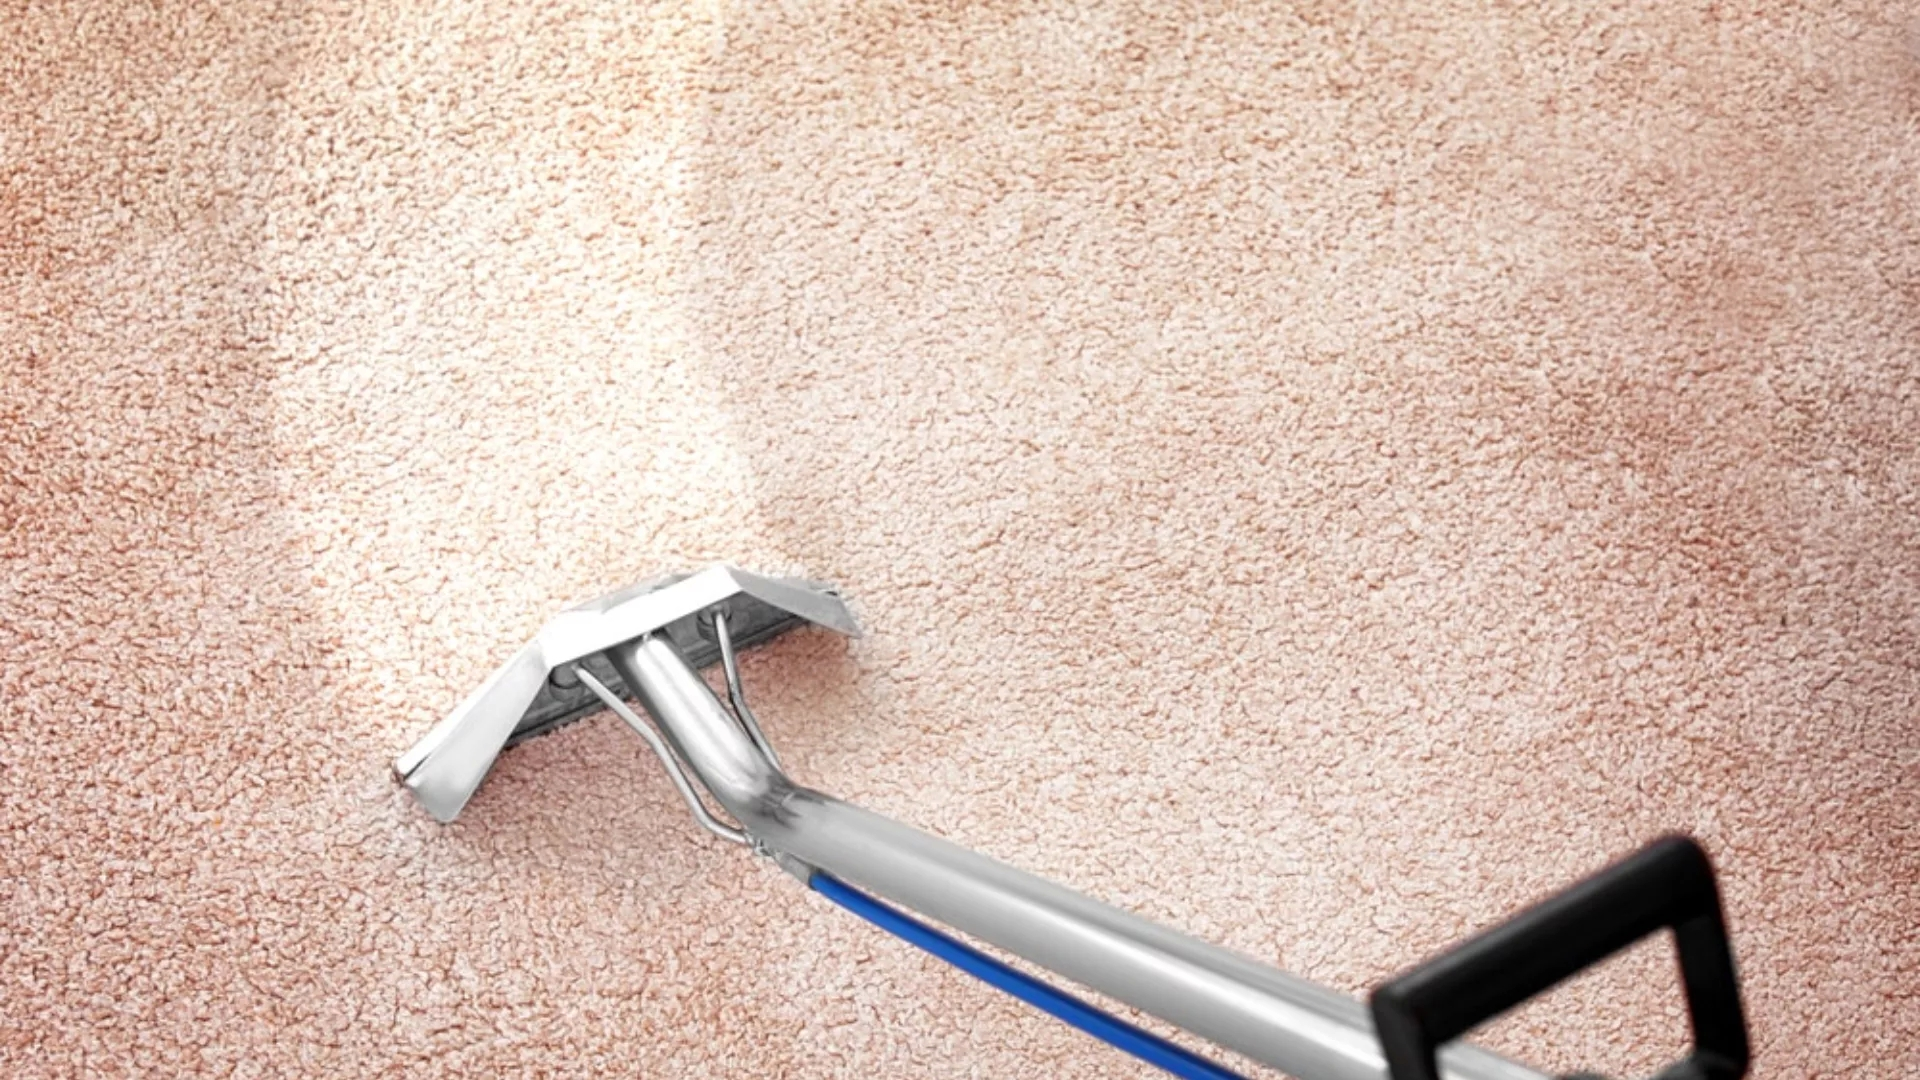 Silver Springs MD – Hires a Grout Cleaning Service? Find Out What the Experts Know About